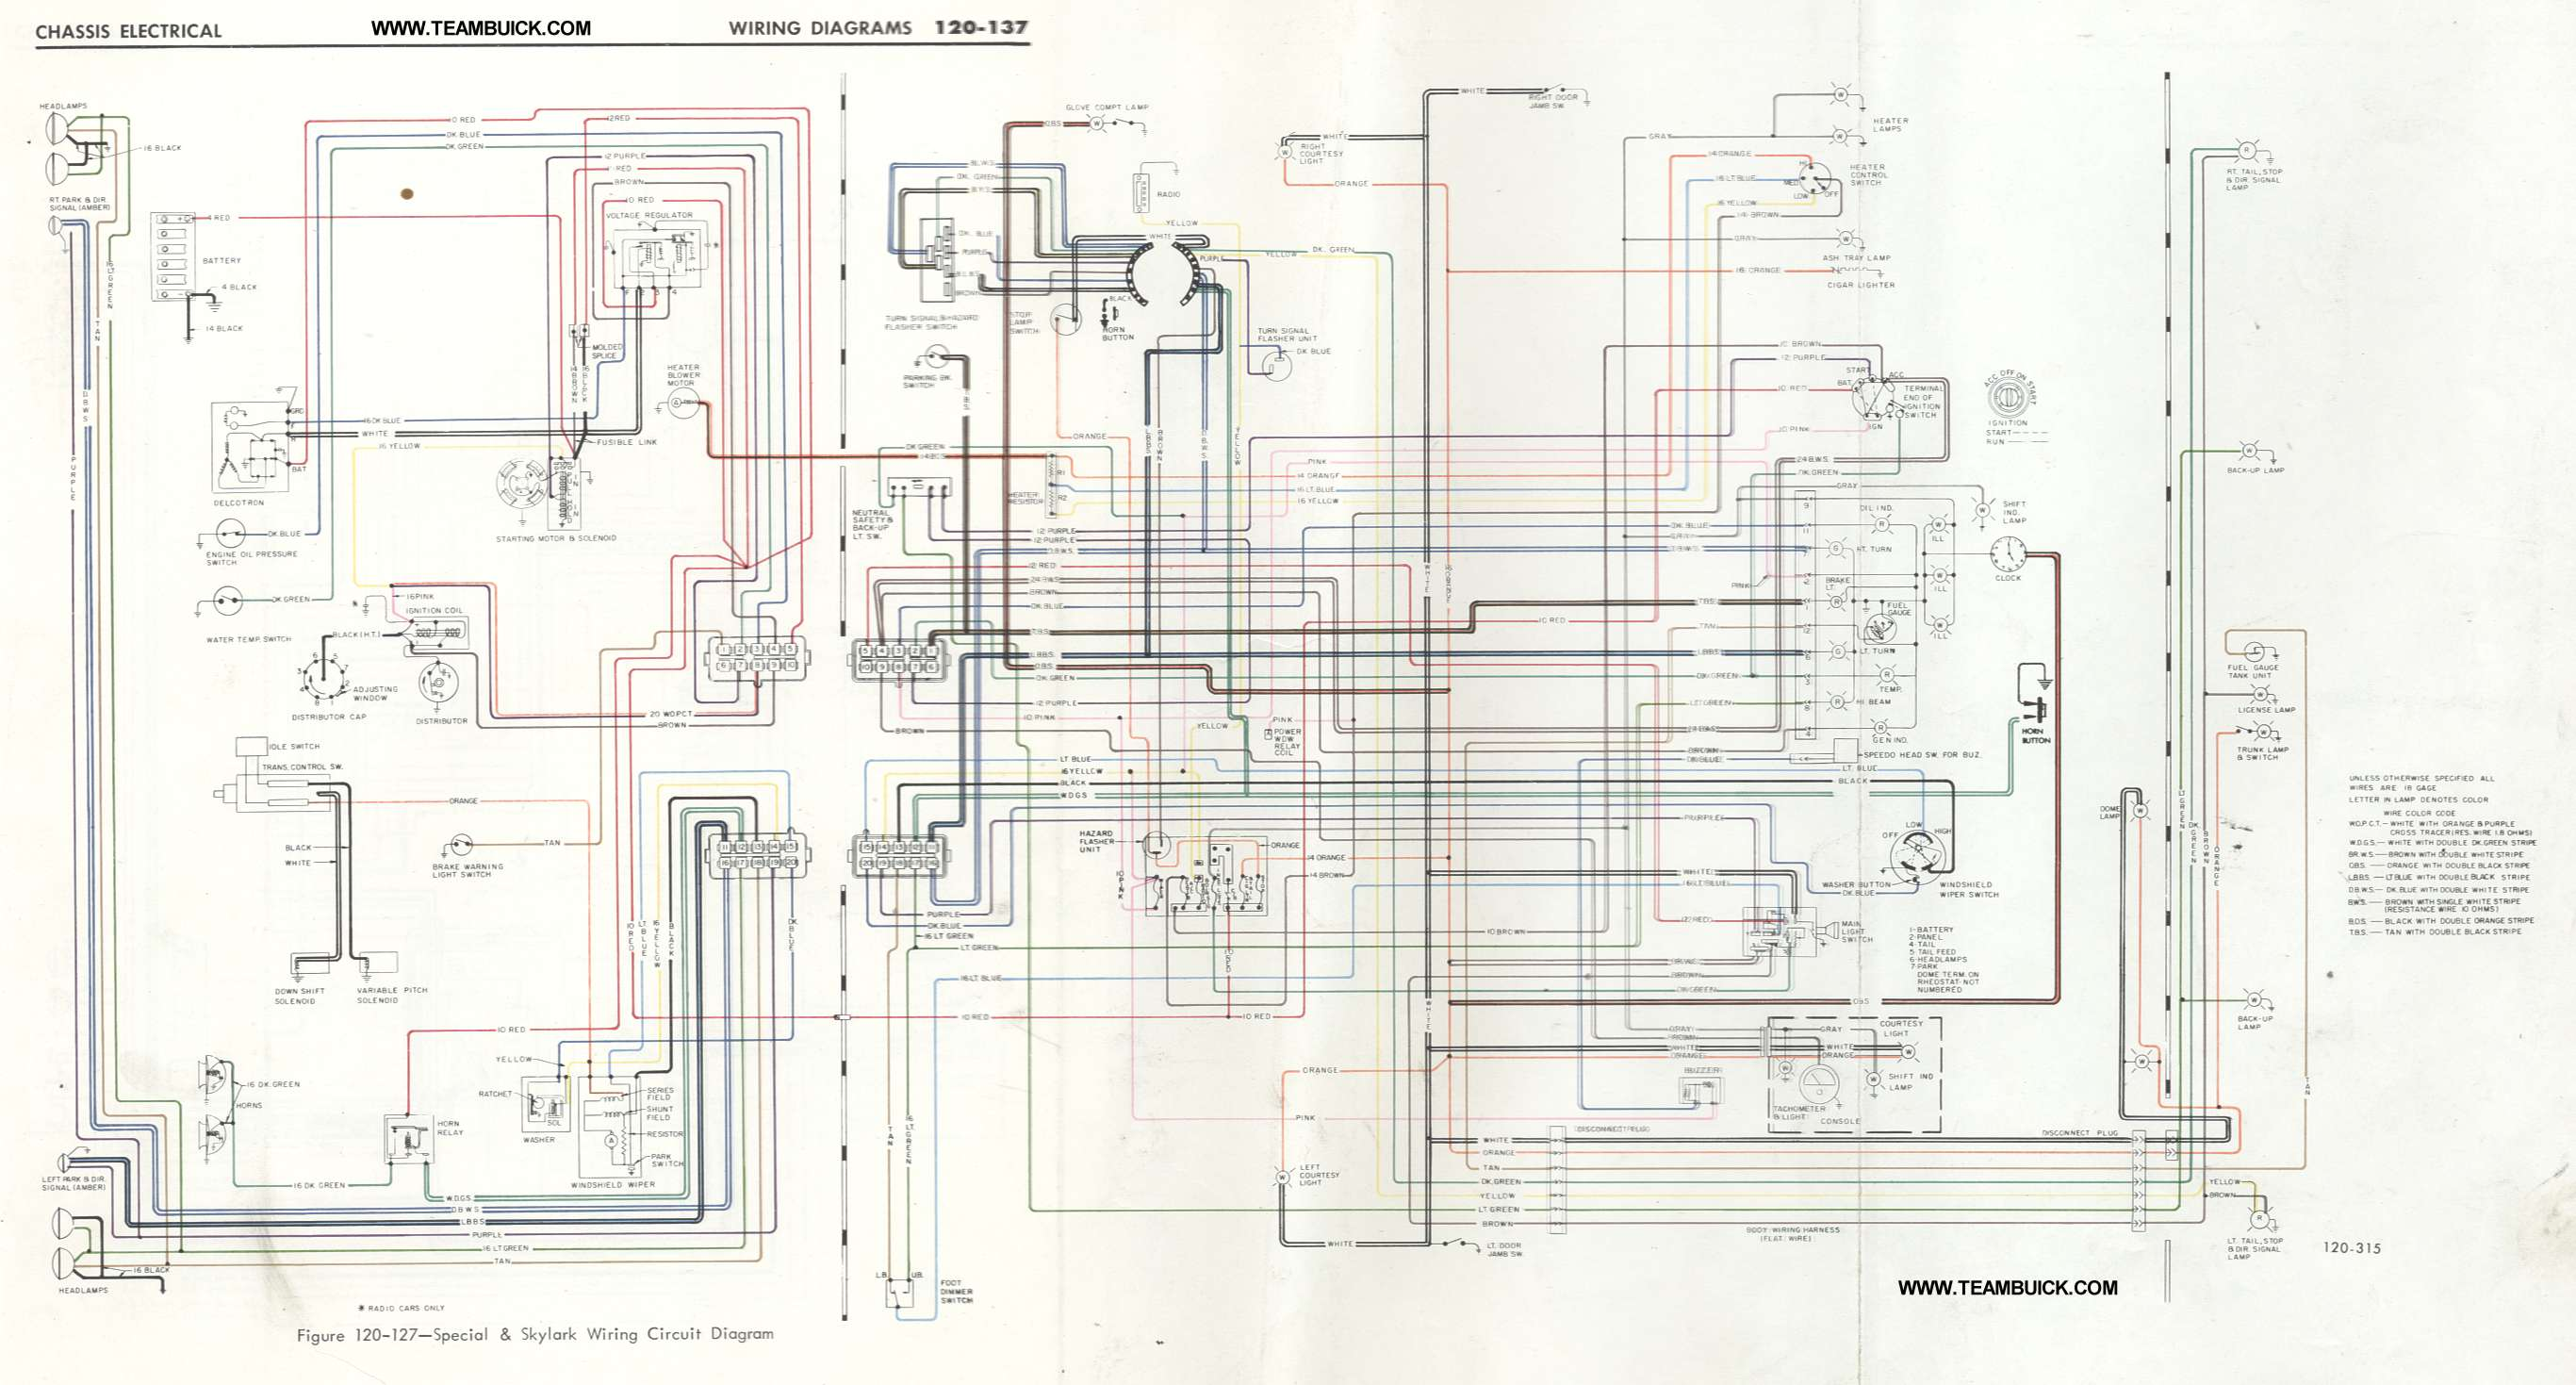 1967 buick wiring diagram trusted schematics wiring diagrams u2022 rh bestbooksrichtreasures com